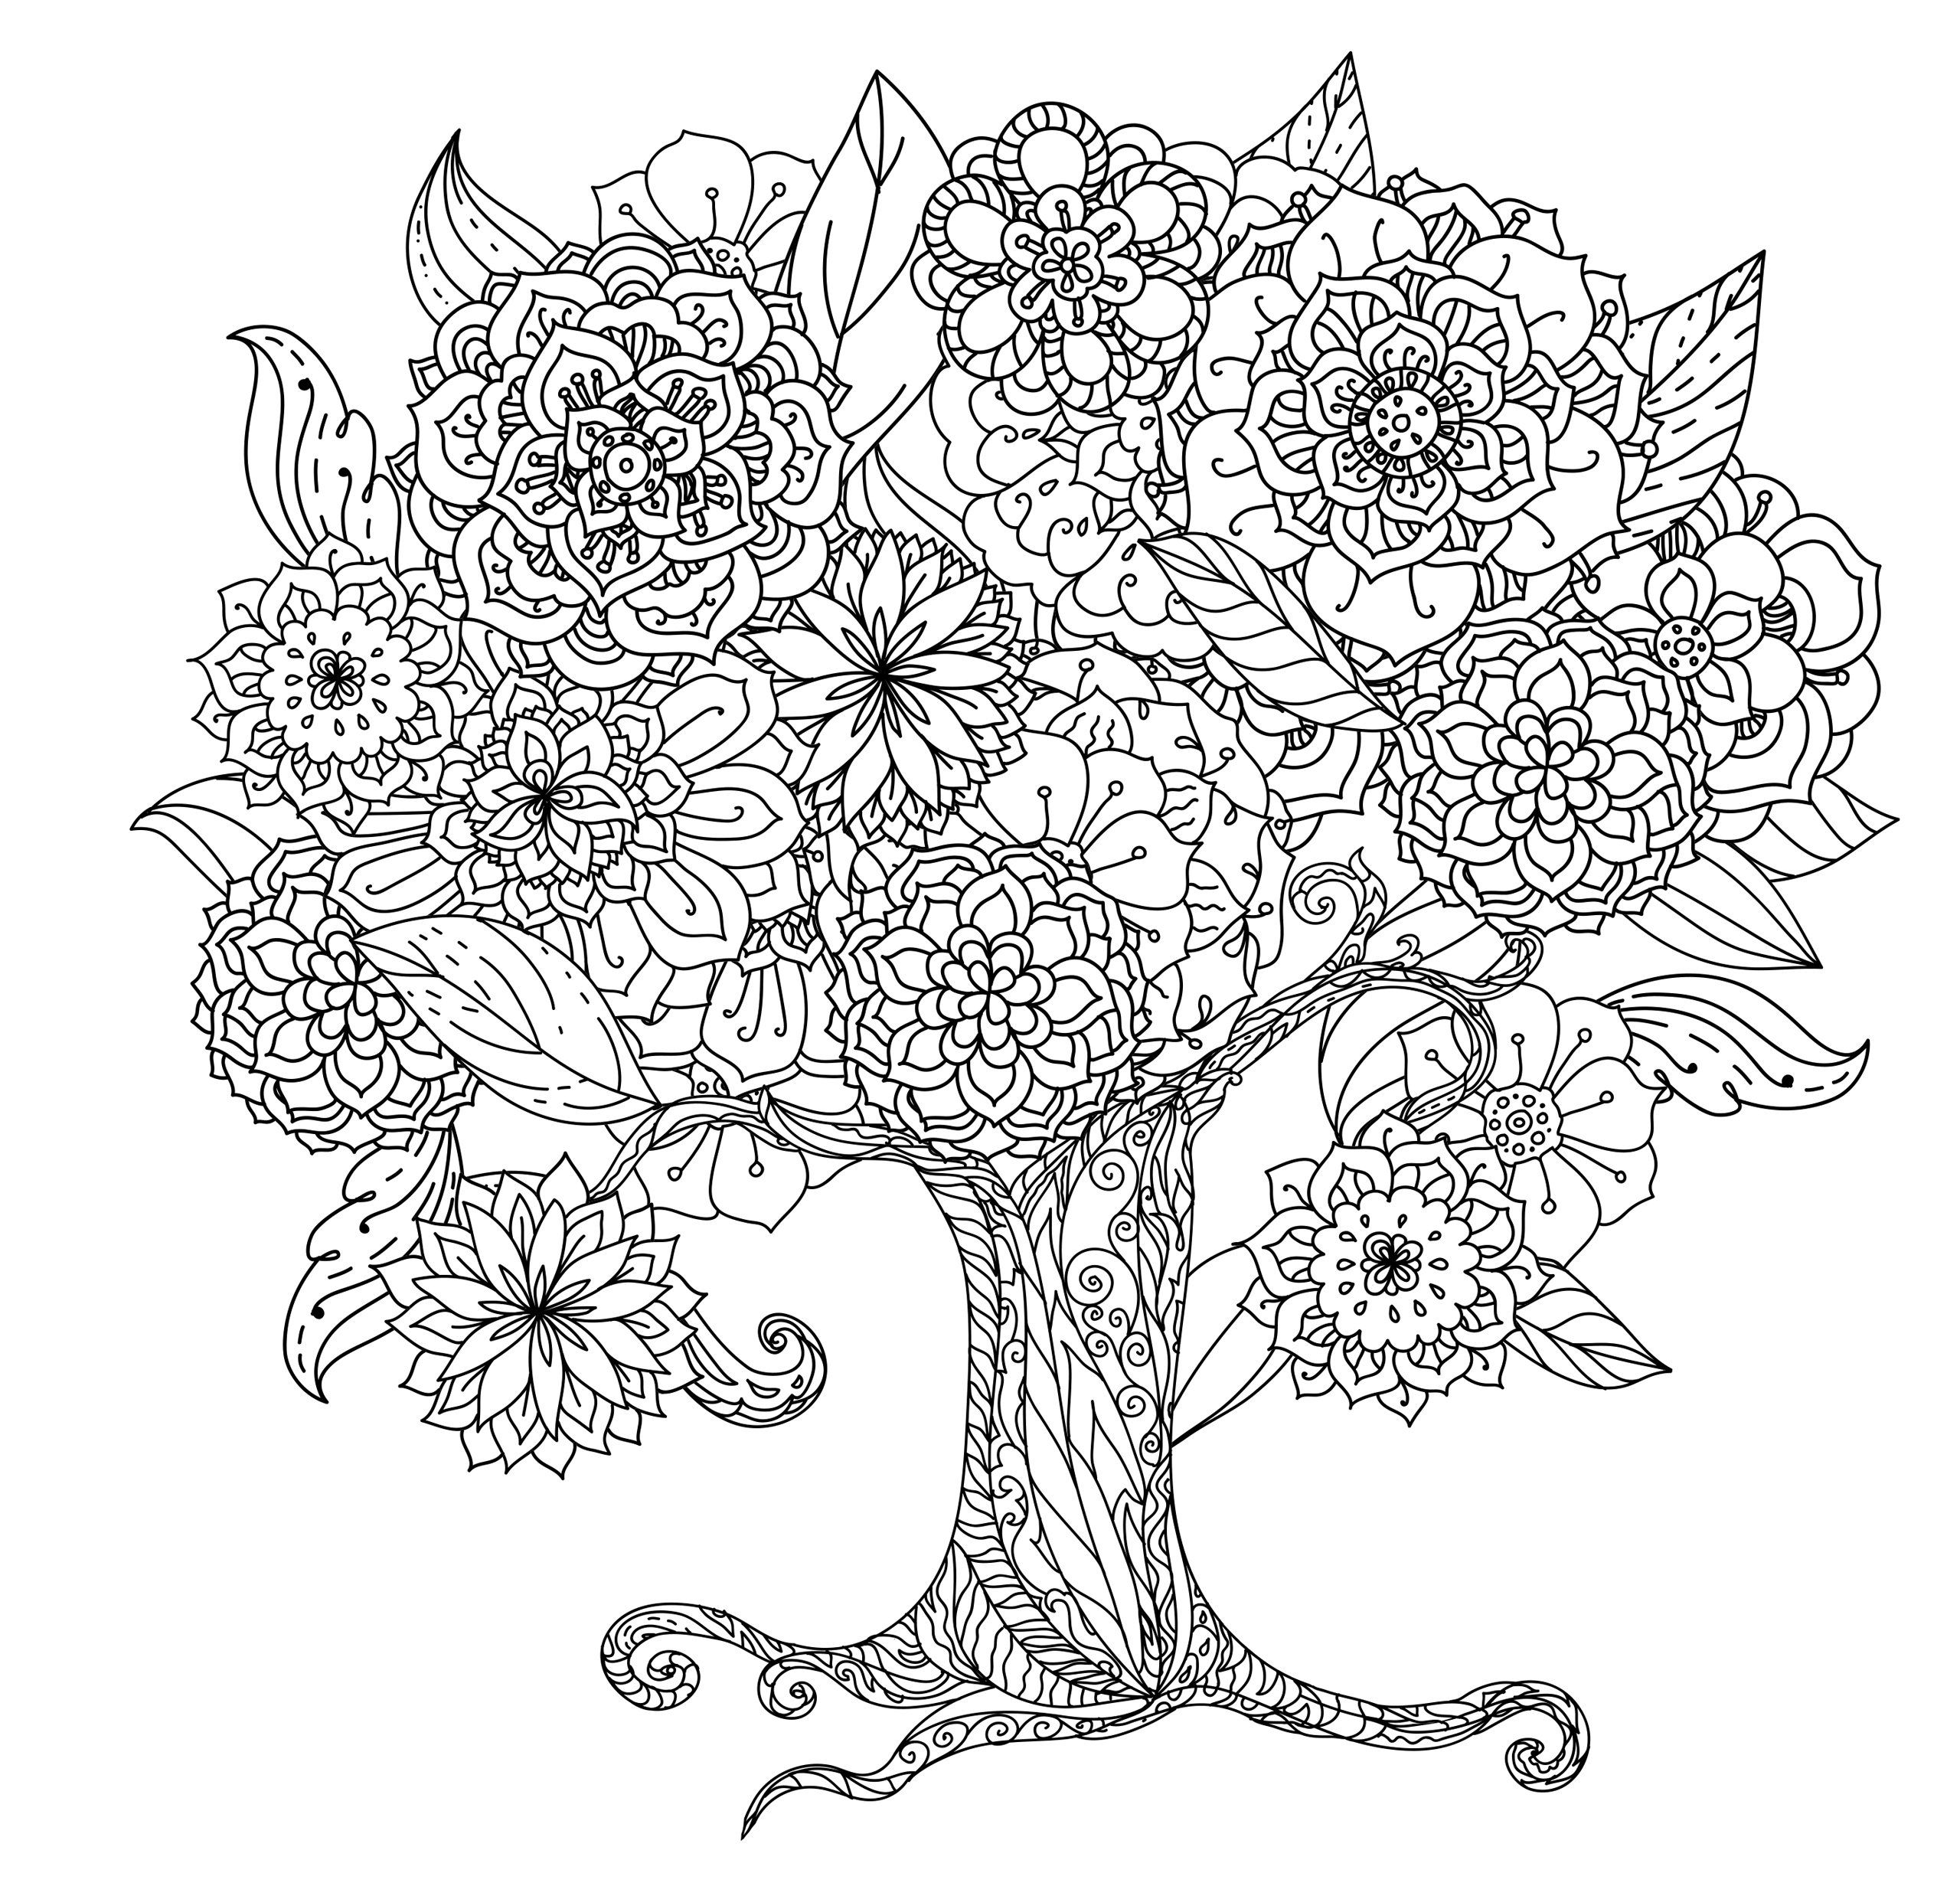 Tranquil Trees Adult Coloring Book | cute coloring book | Pinterest ...